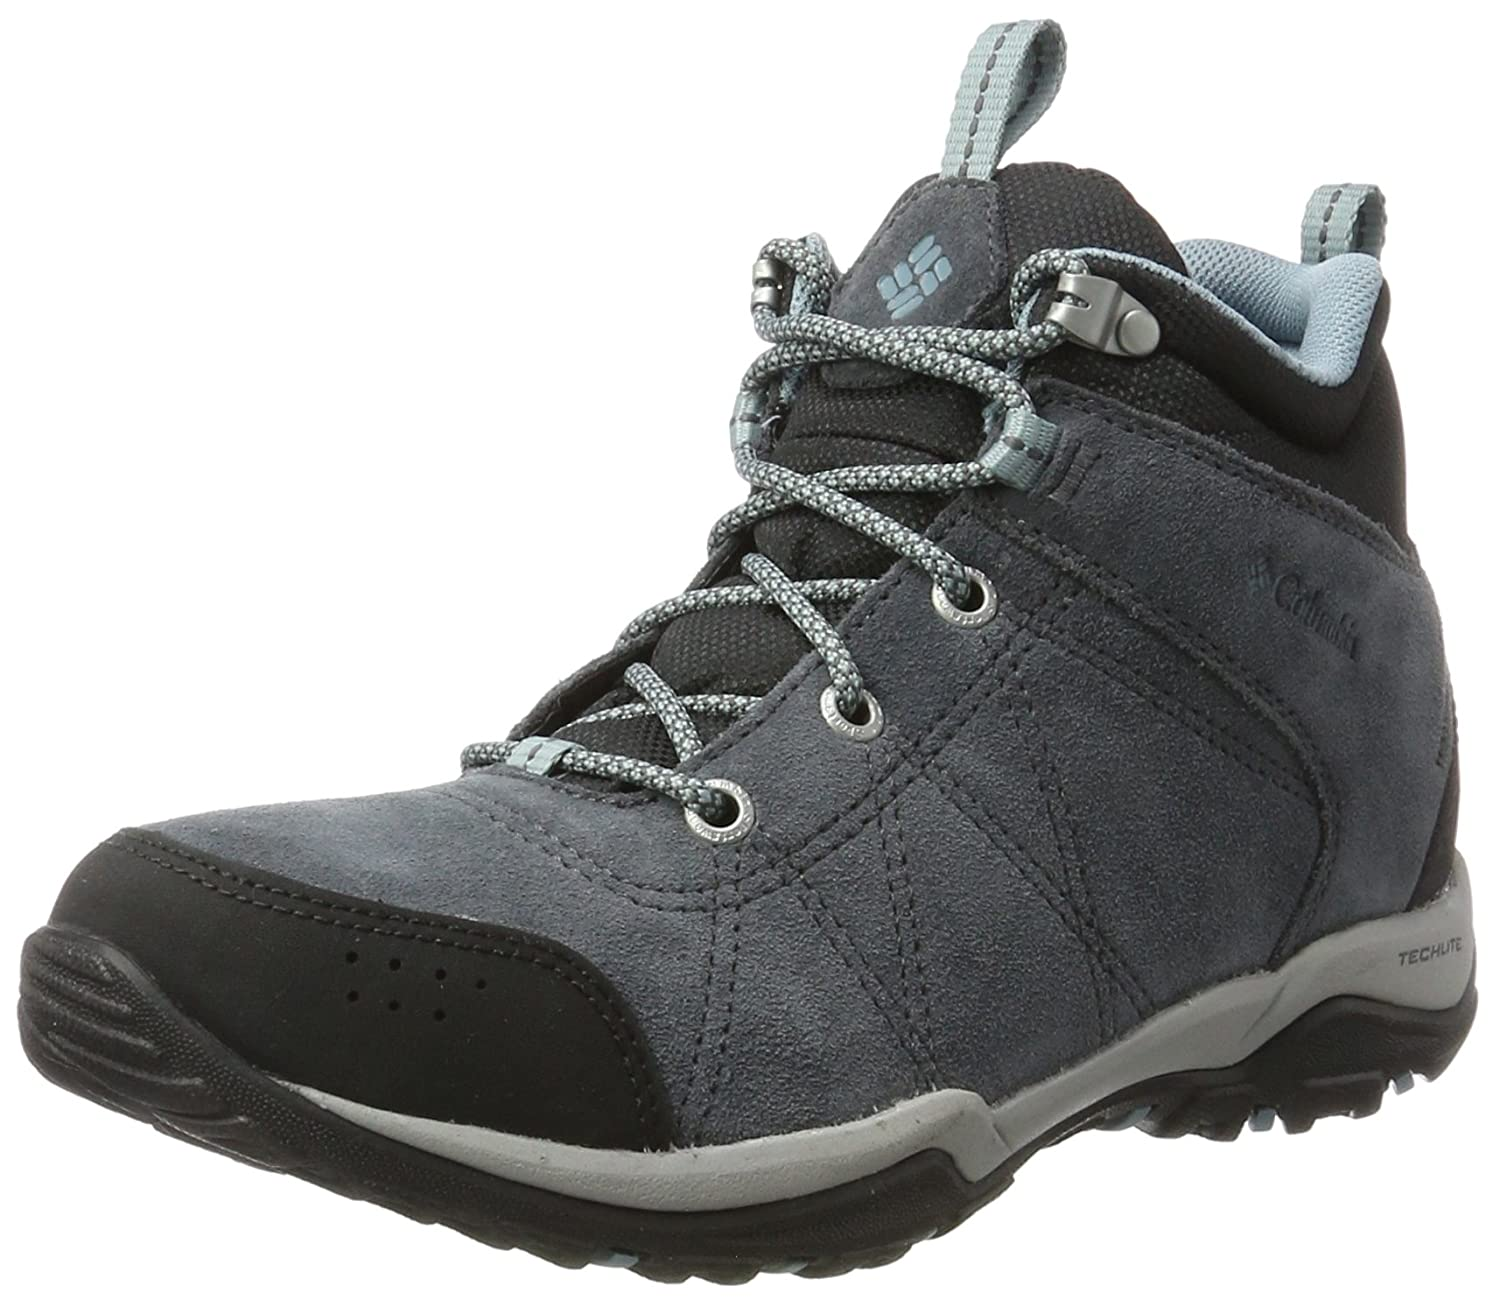 cafd42a6d66b Columbia Women s Fire Venture Mid Waterproof Hiking Boot  Amazon.ca  Shoes    Handbags